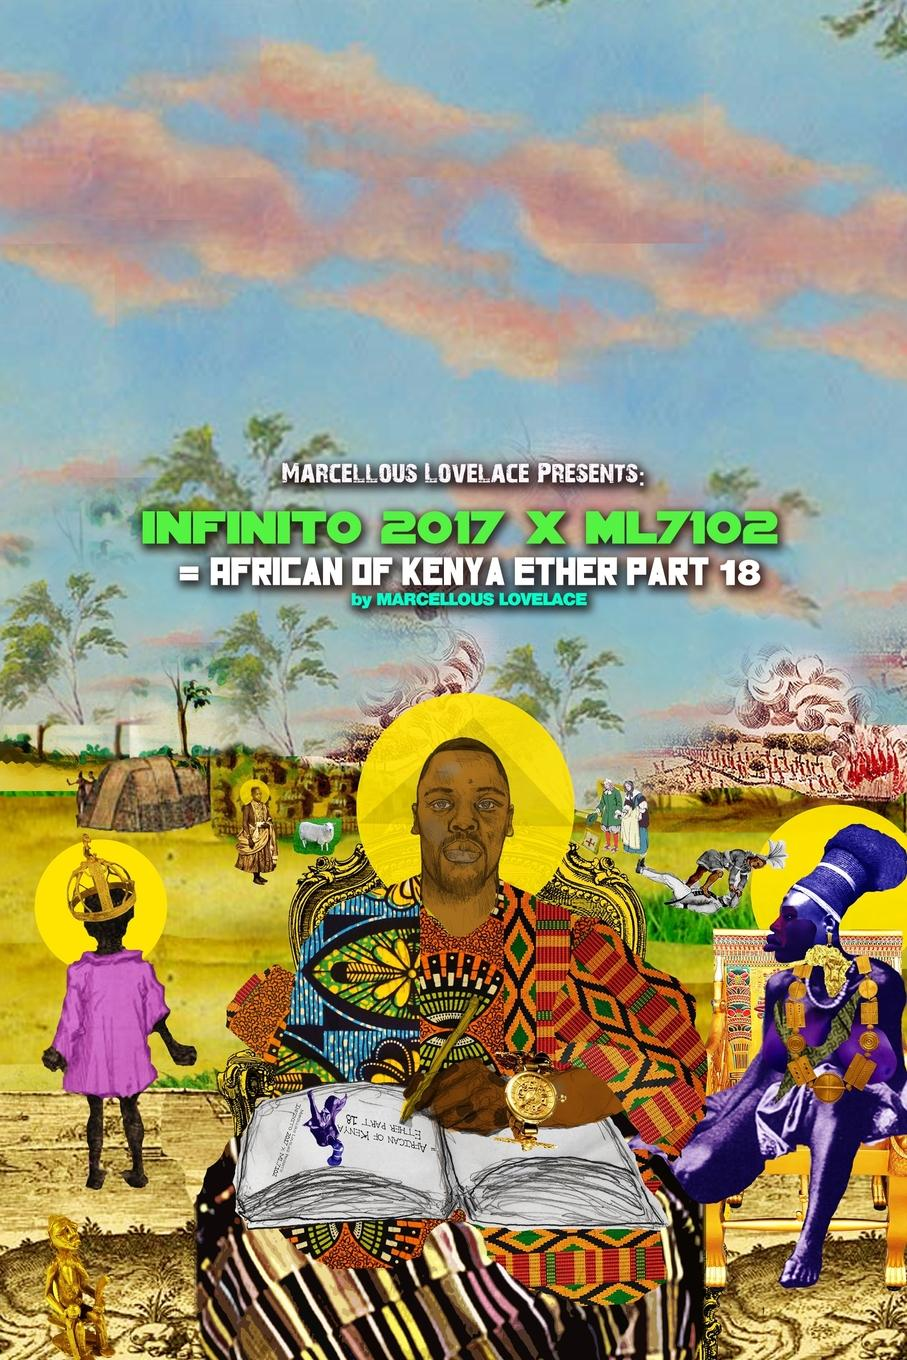 Marcellous Lovelace Marcellous Lovelace Presents. Infinito 2017 x ML7102 African of Kenya Ether part 18 sharla lovelace once a charmer